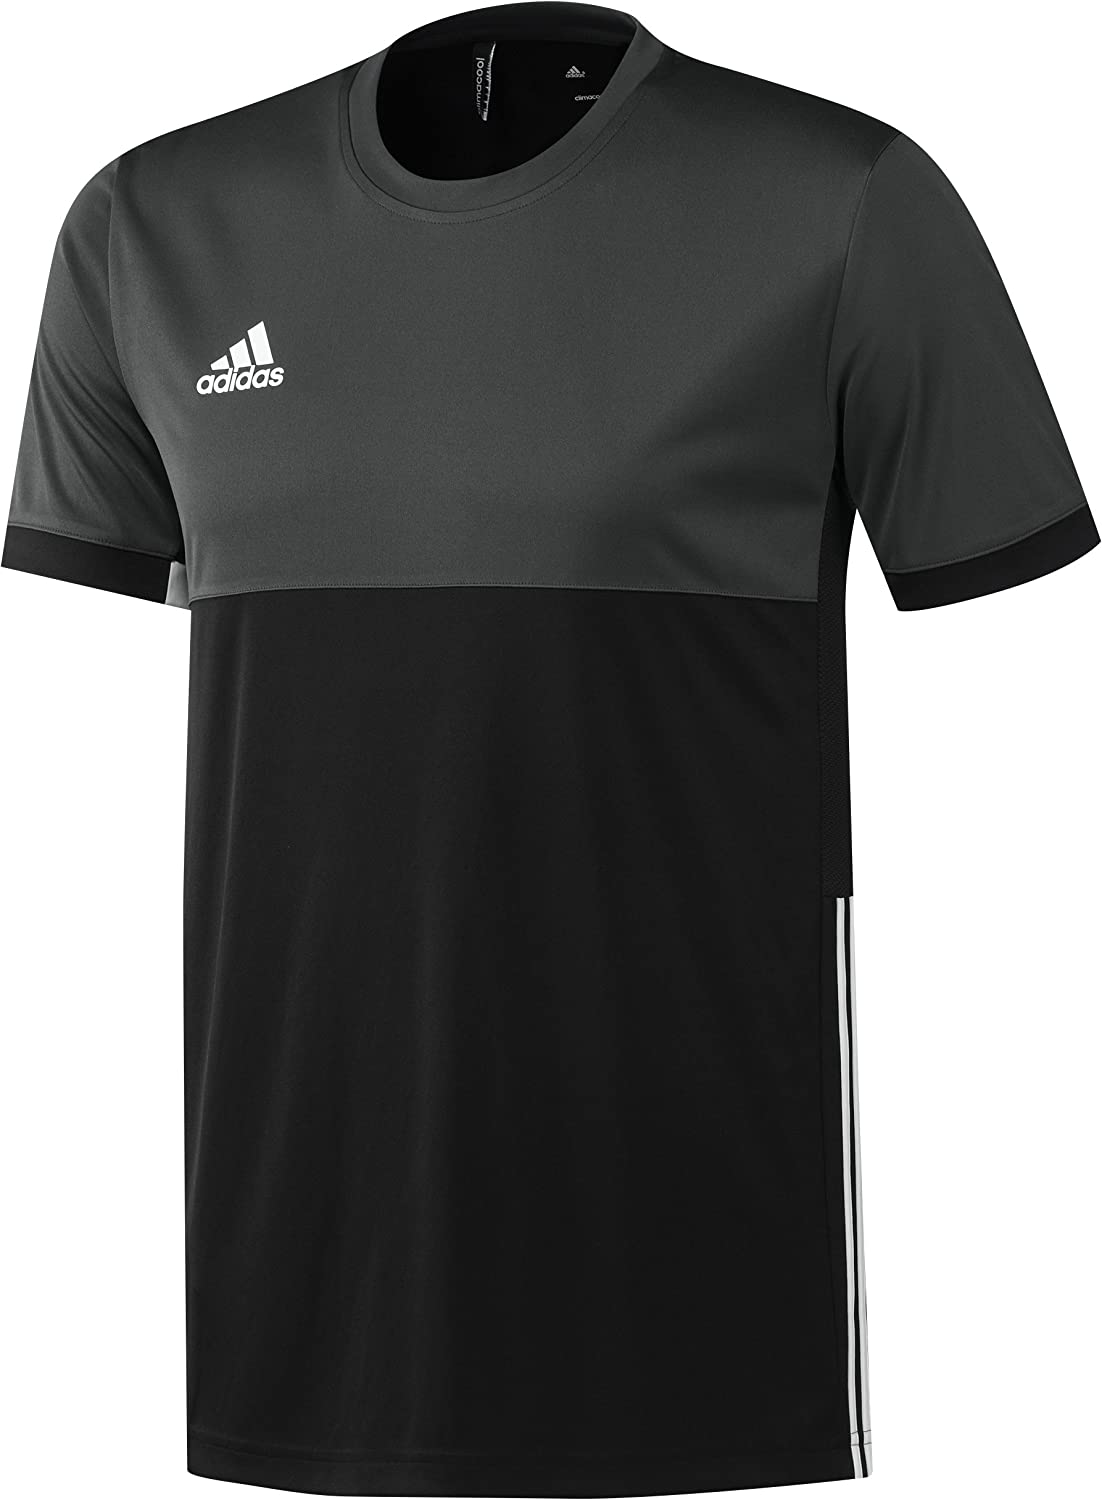 442d13191d3b49 adidas Men s T-Shirt T16 Cc Tee  Amazon.co.uk  Sports   Outdoors